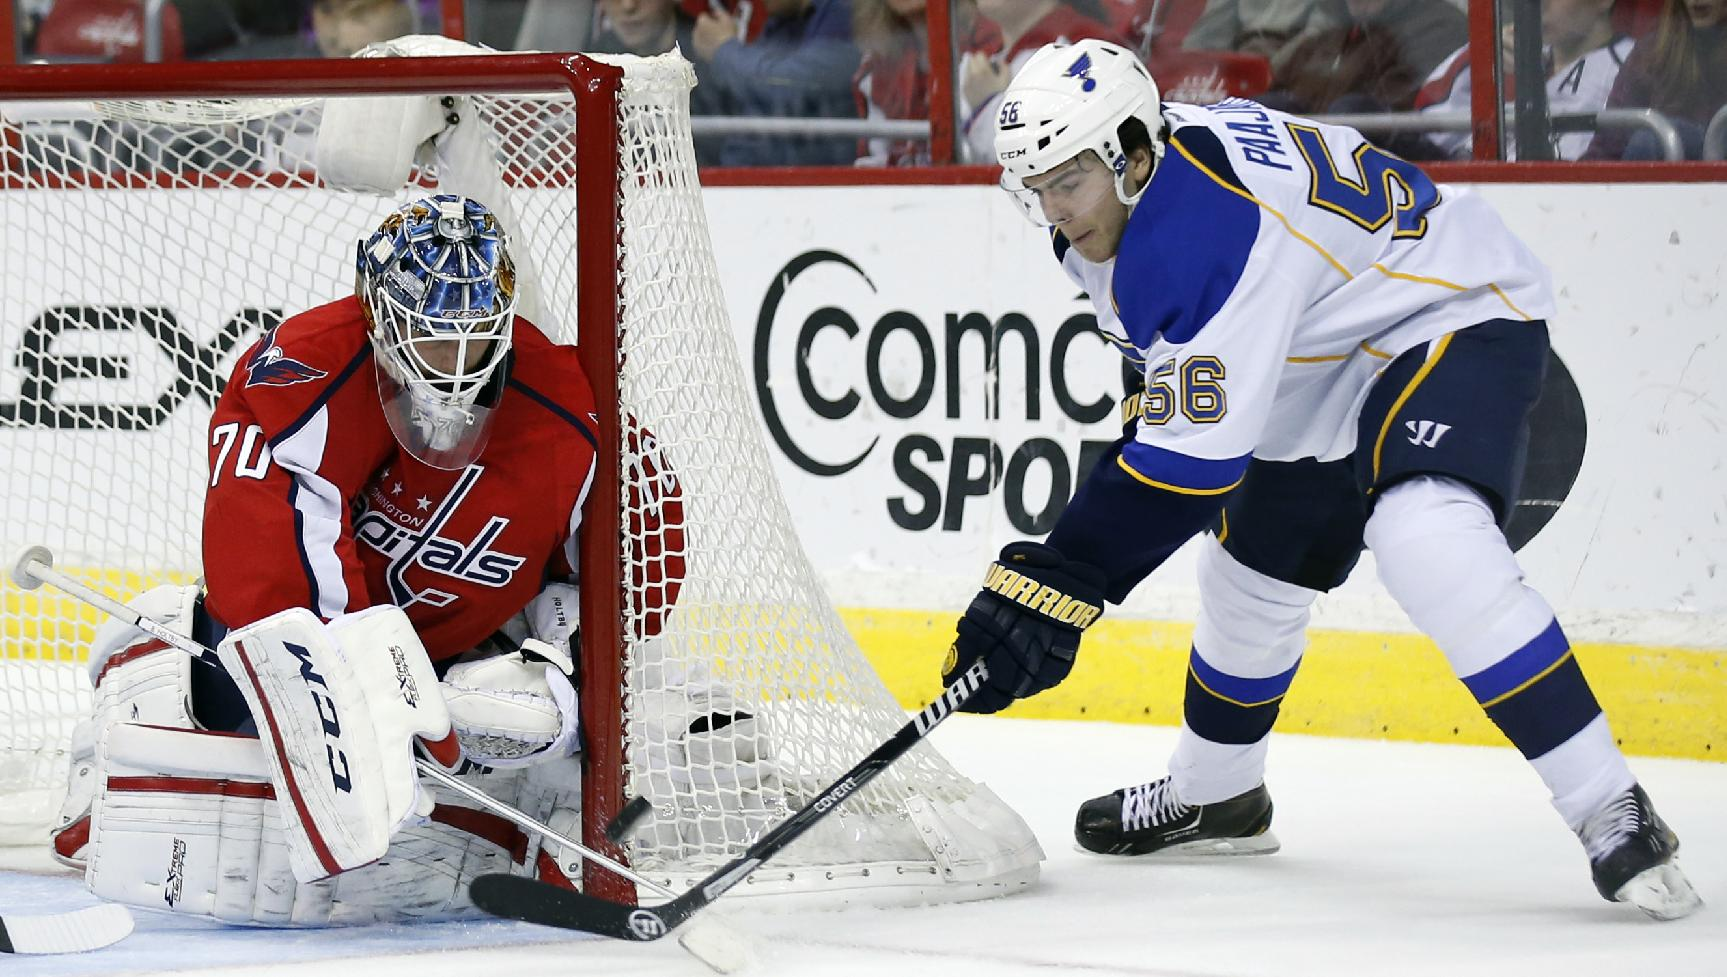 St. Louis Blues left wing Magnus Paajarvi (56), from Sweden, has his shot blocked by Washington Capitals goalie Braden Holtby (70) in the second period of an NHL hockey game, Sunday, Nov. 17, 2013, in Washington